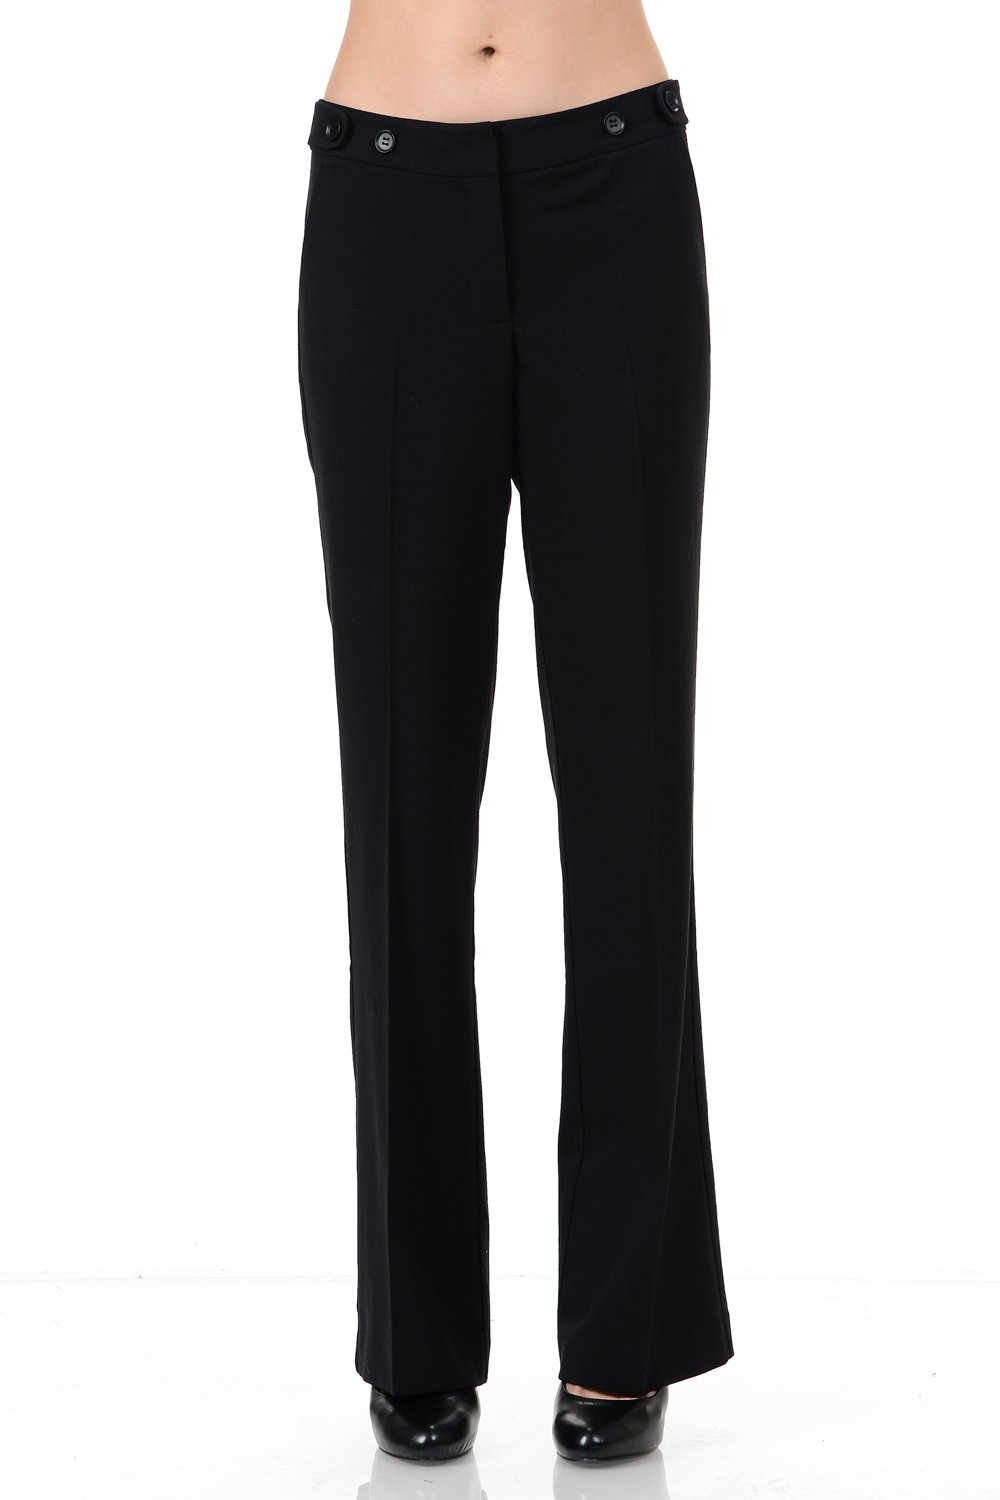 Maryclan Career Women's Dress Pants Little Boot Cut With Double Button Tab Detail (Large, Black)